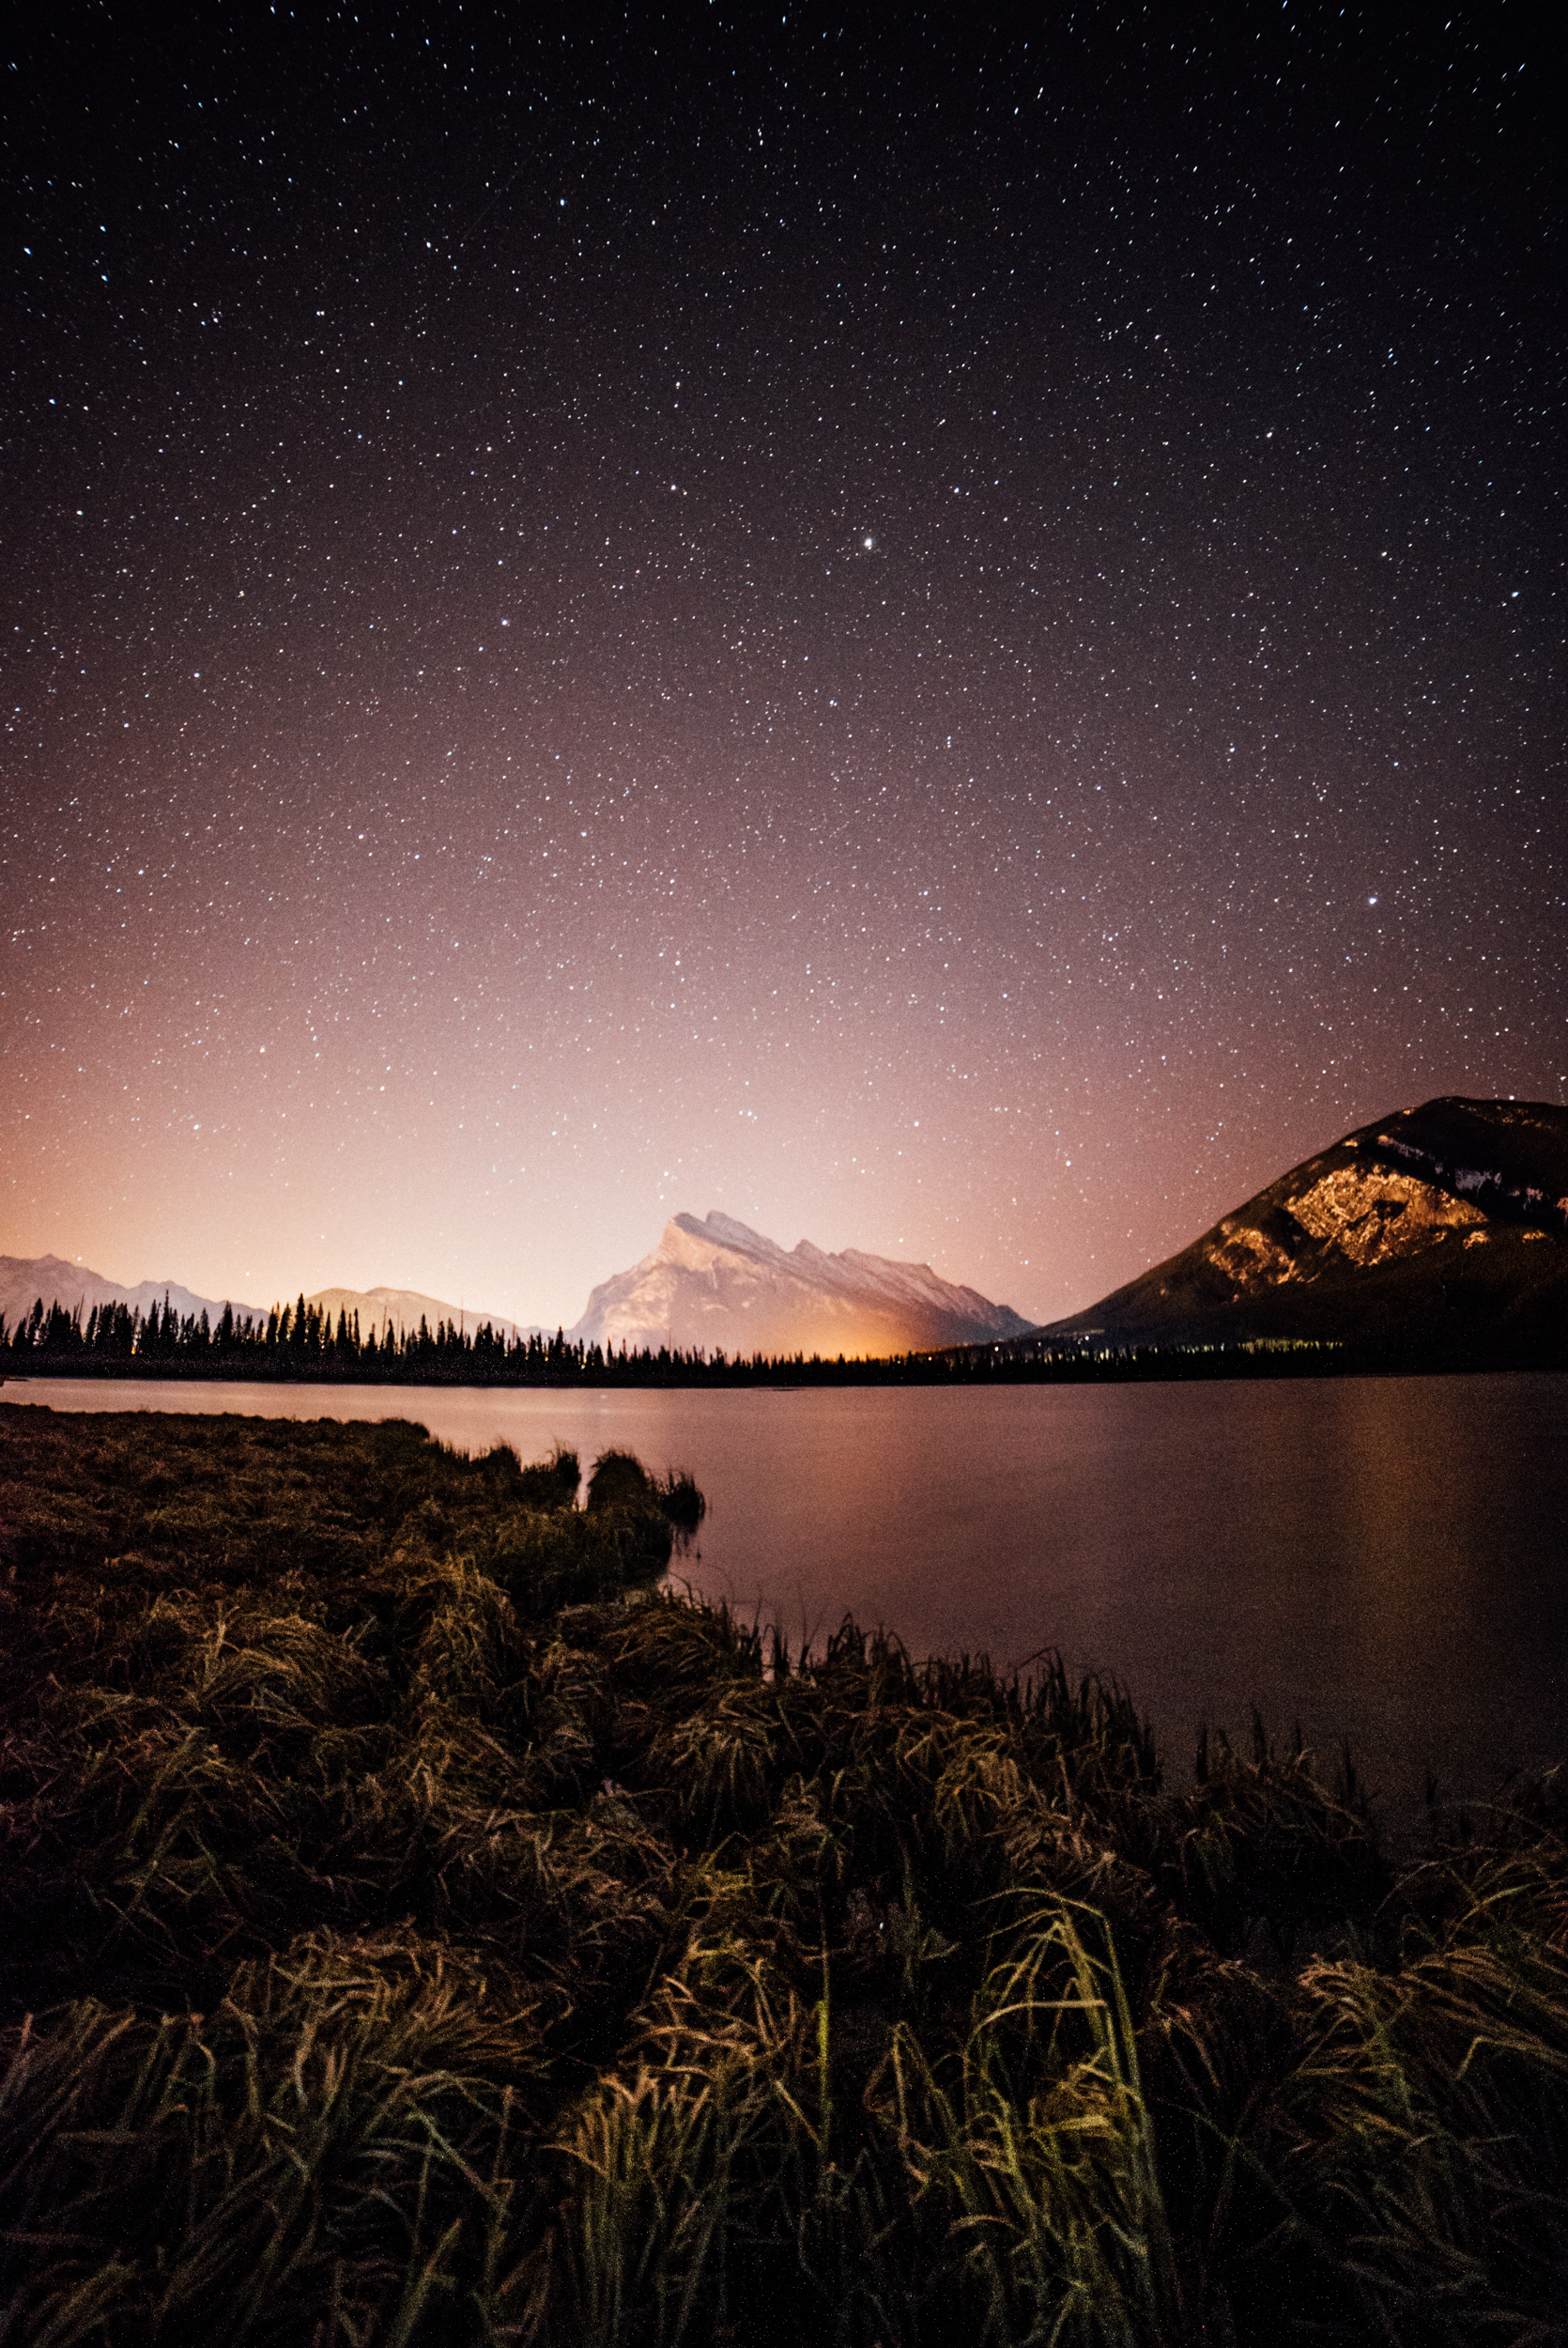 The Stars over Banff, Alberta